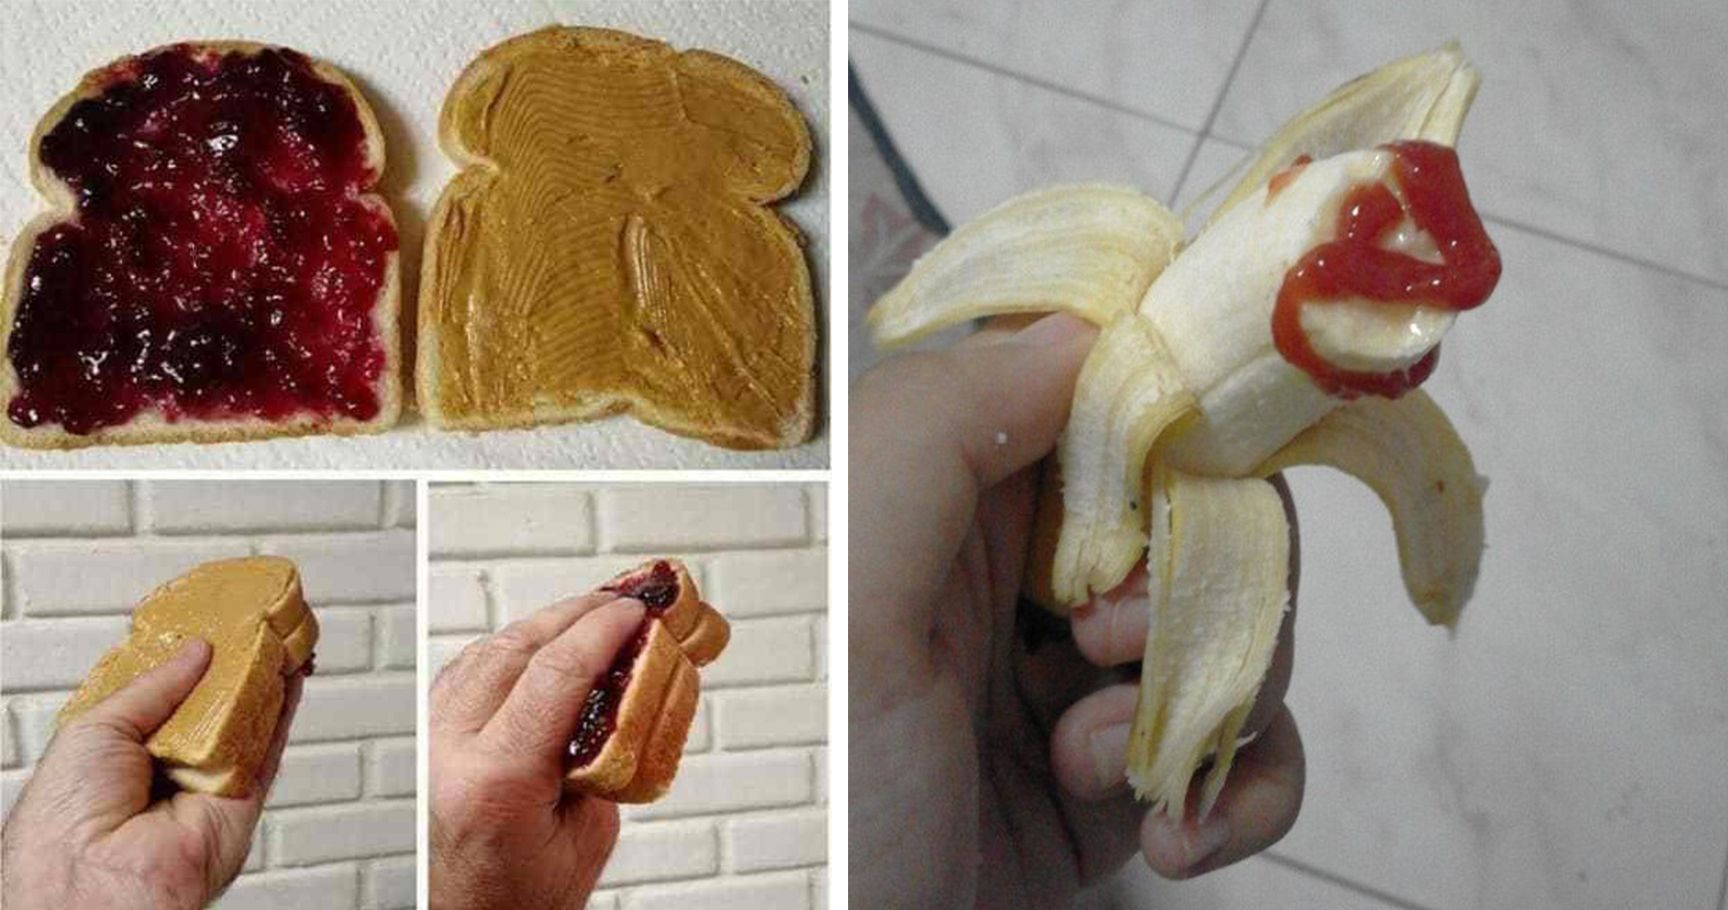 15 Imperfect Food Pictures That Get On Our Nerves